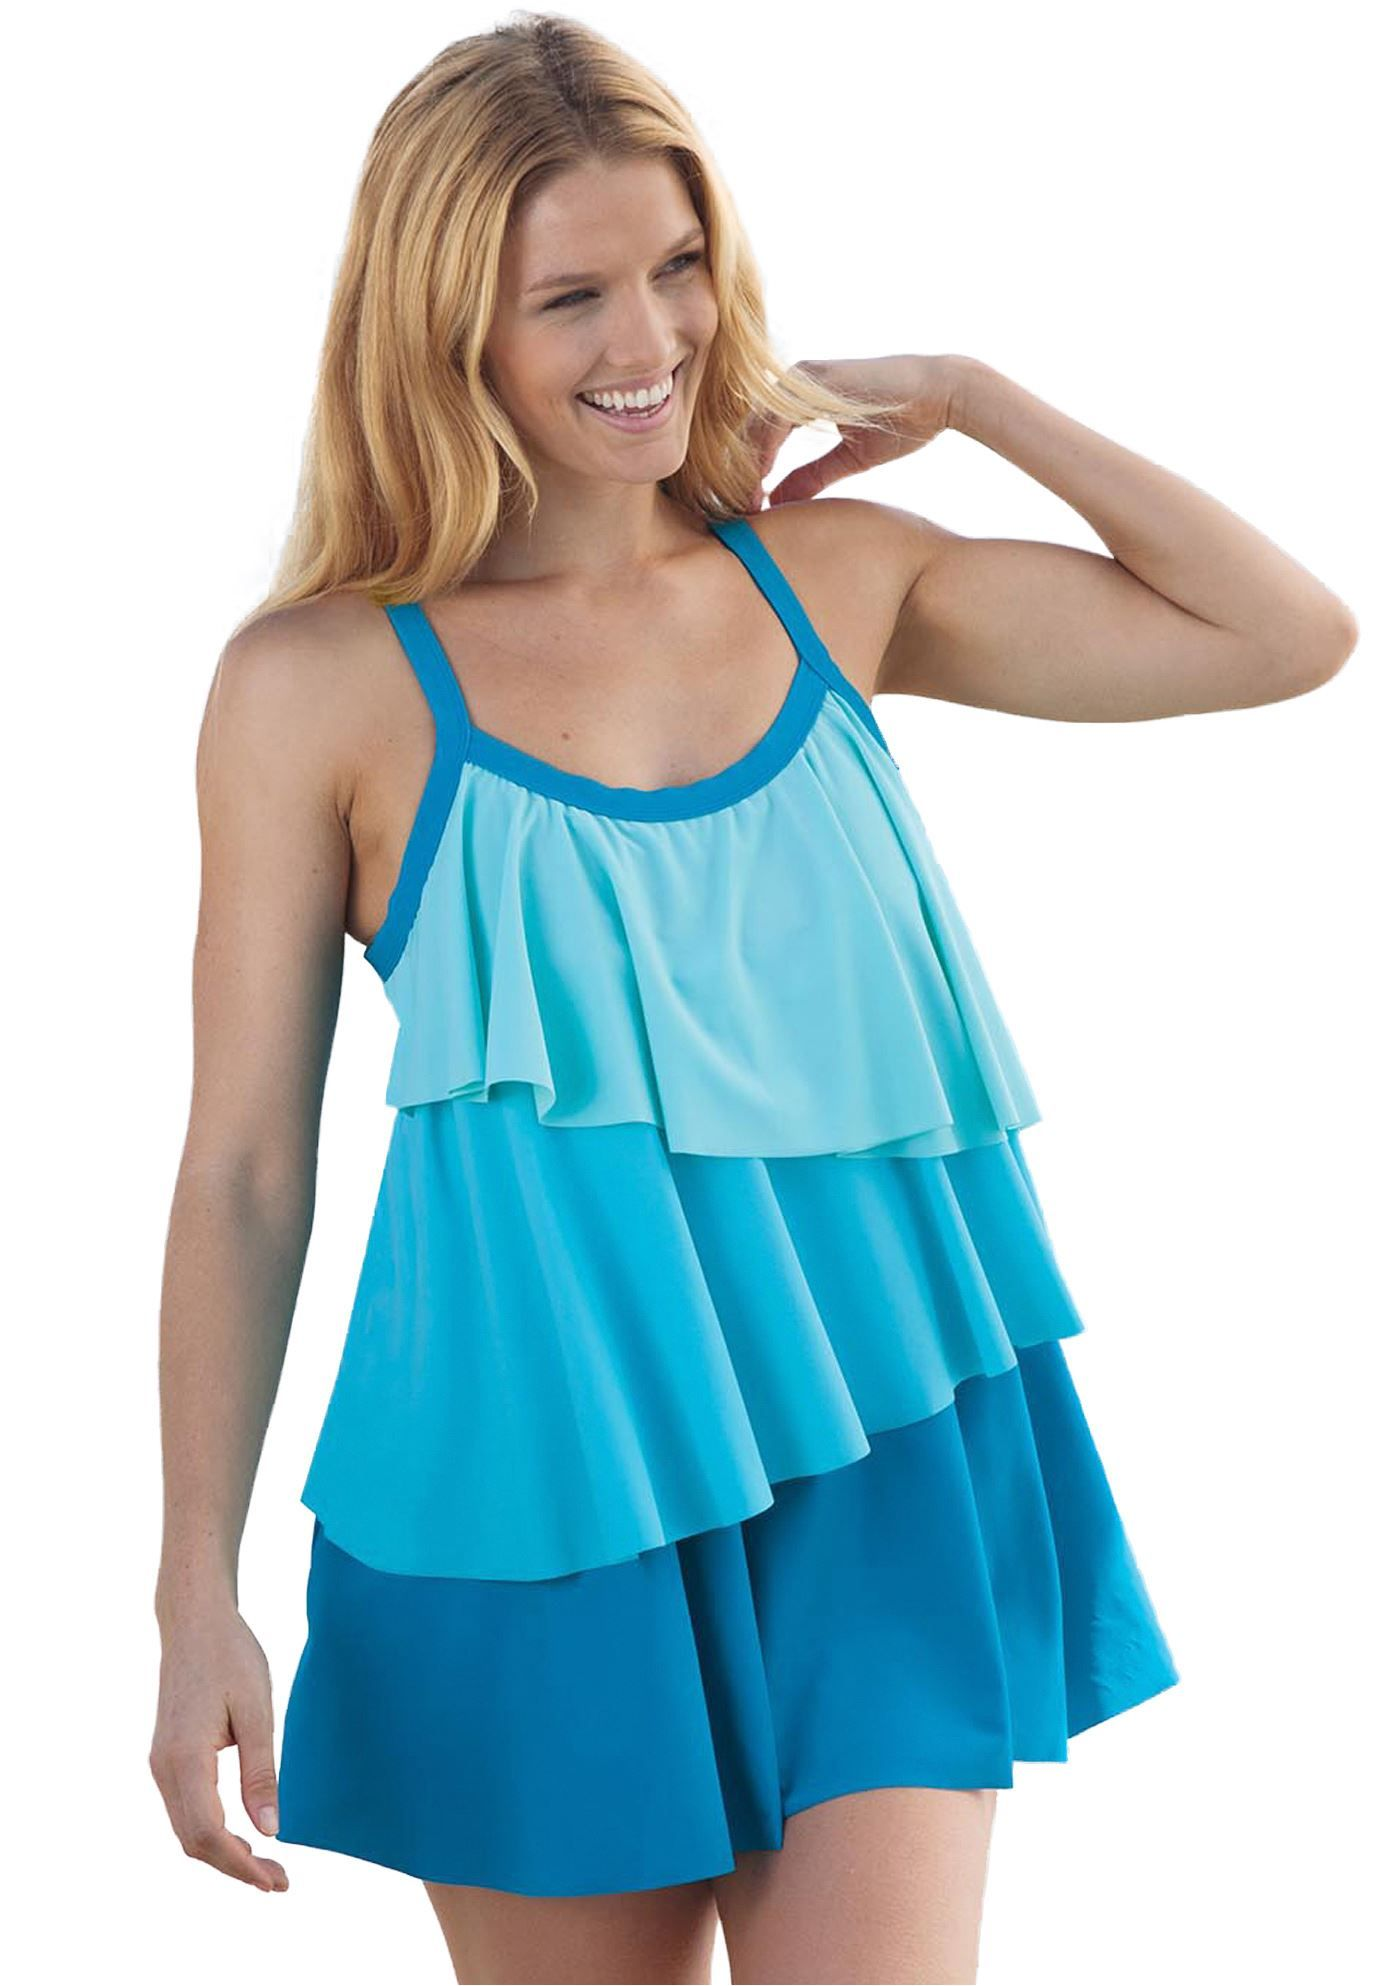 Plus Size Swimdress with asymmetric tiers, | Cute Bathing Suits ...